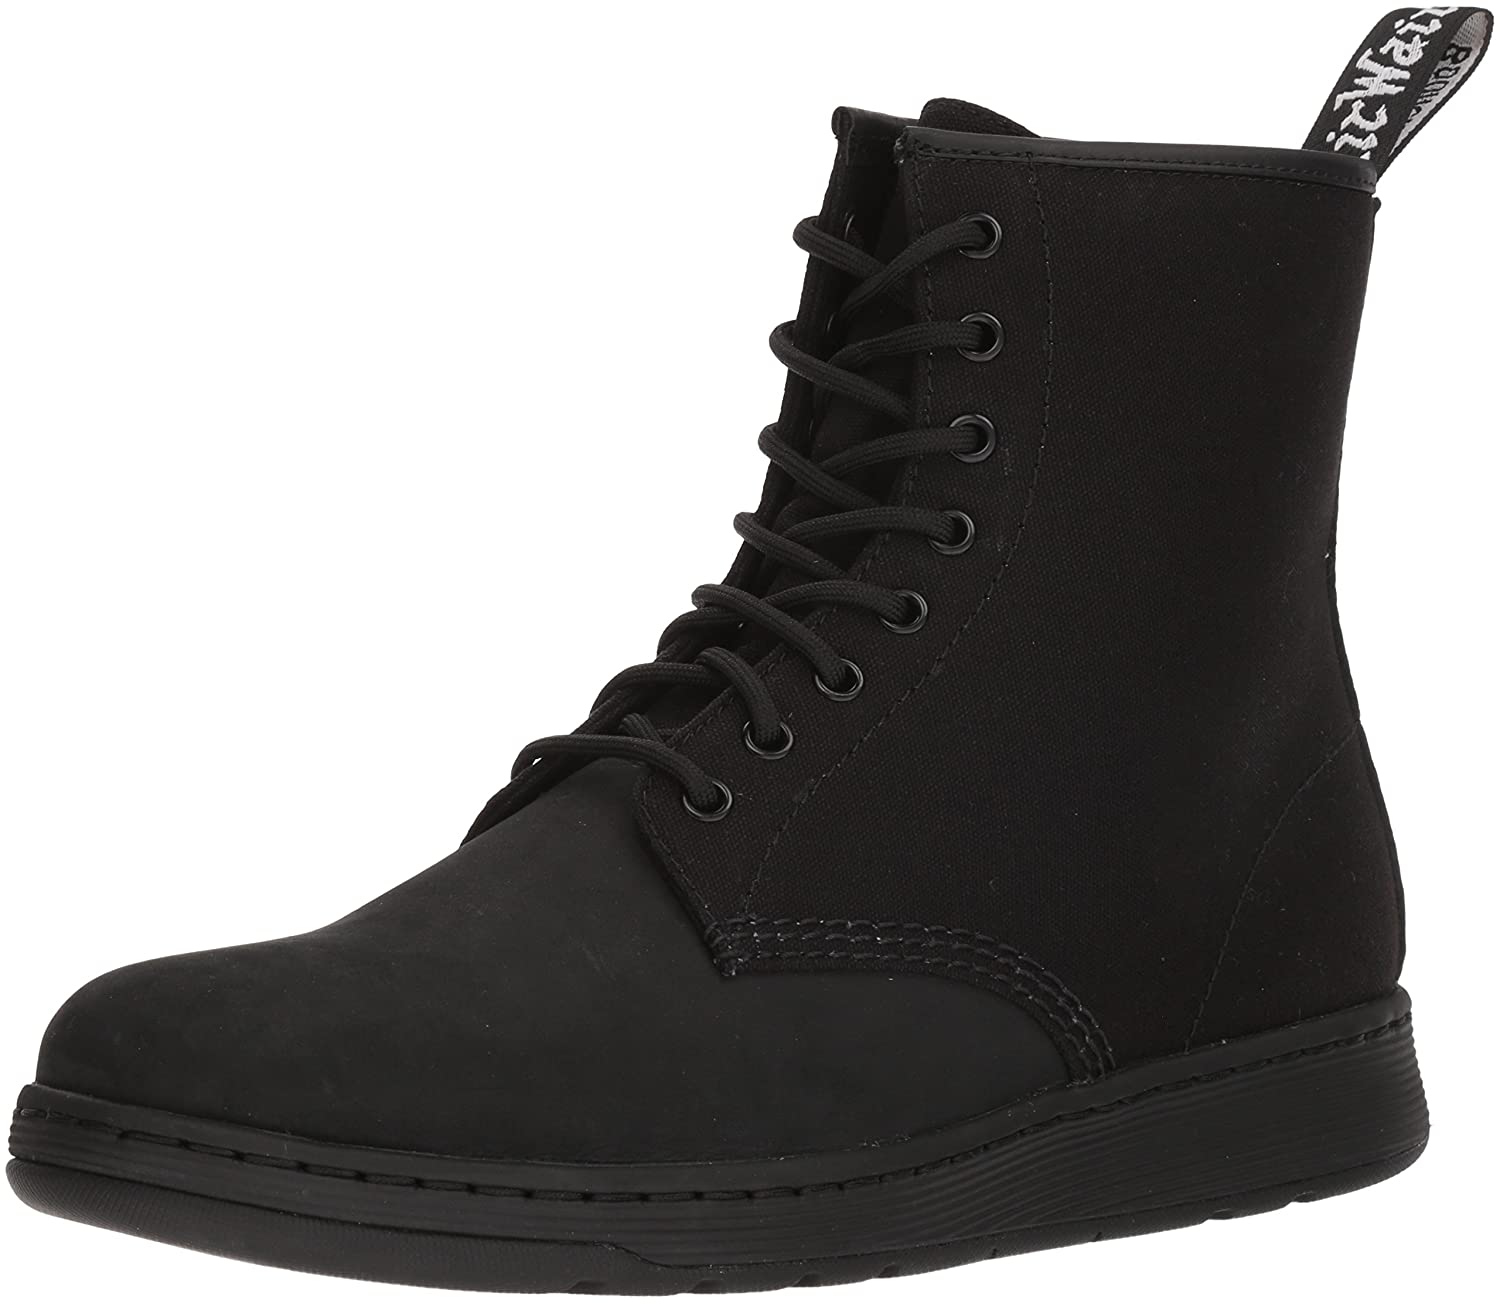 Dr. Martens Newton Nubuck Black Fashion Boot B071GFT5ZS 7 Medium UK (US Women's 9, US Mens 8 US)|Black